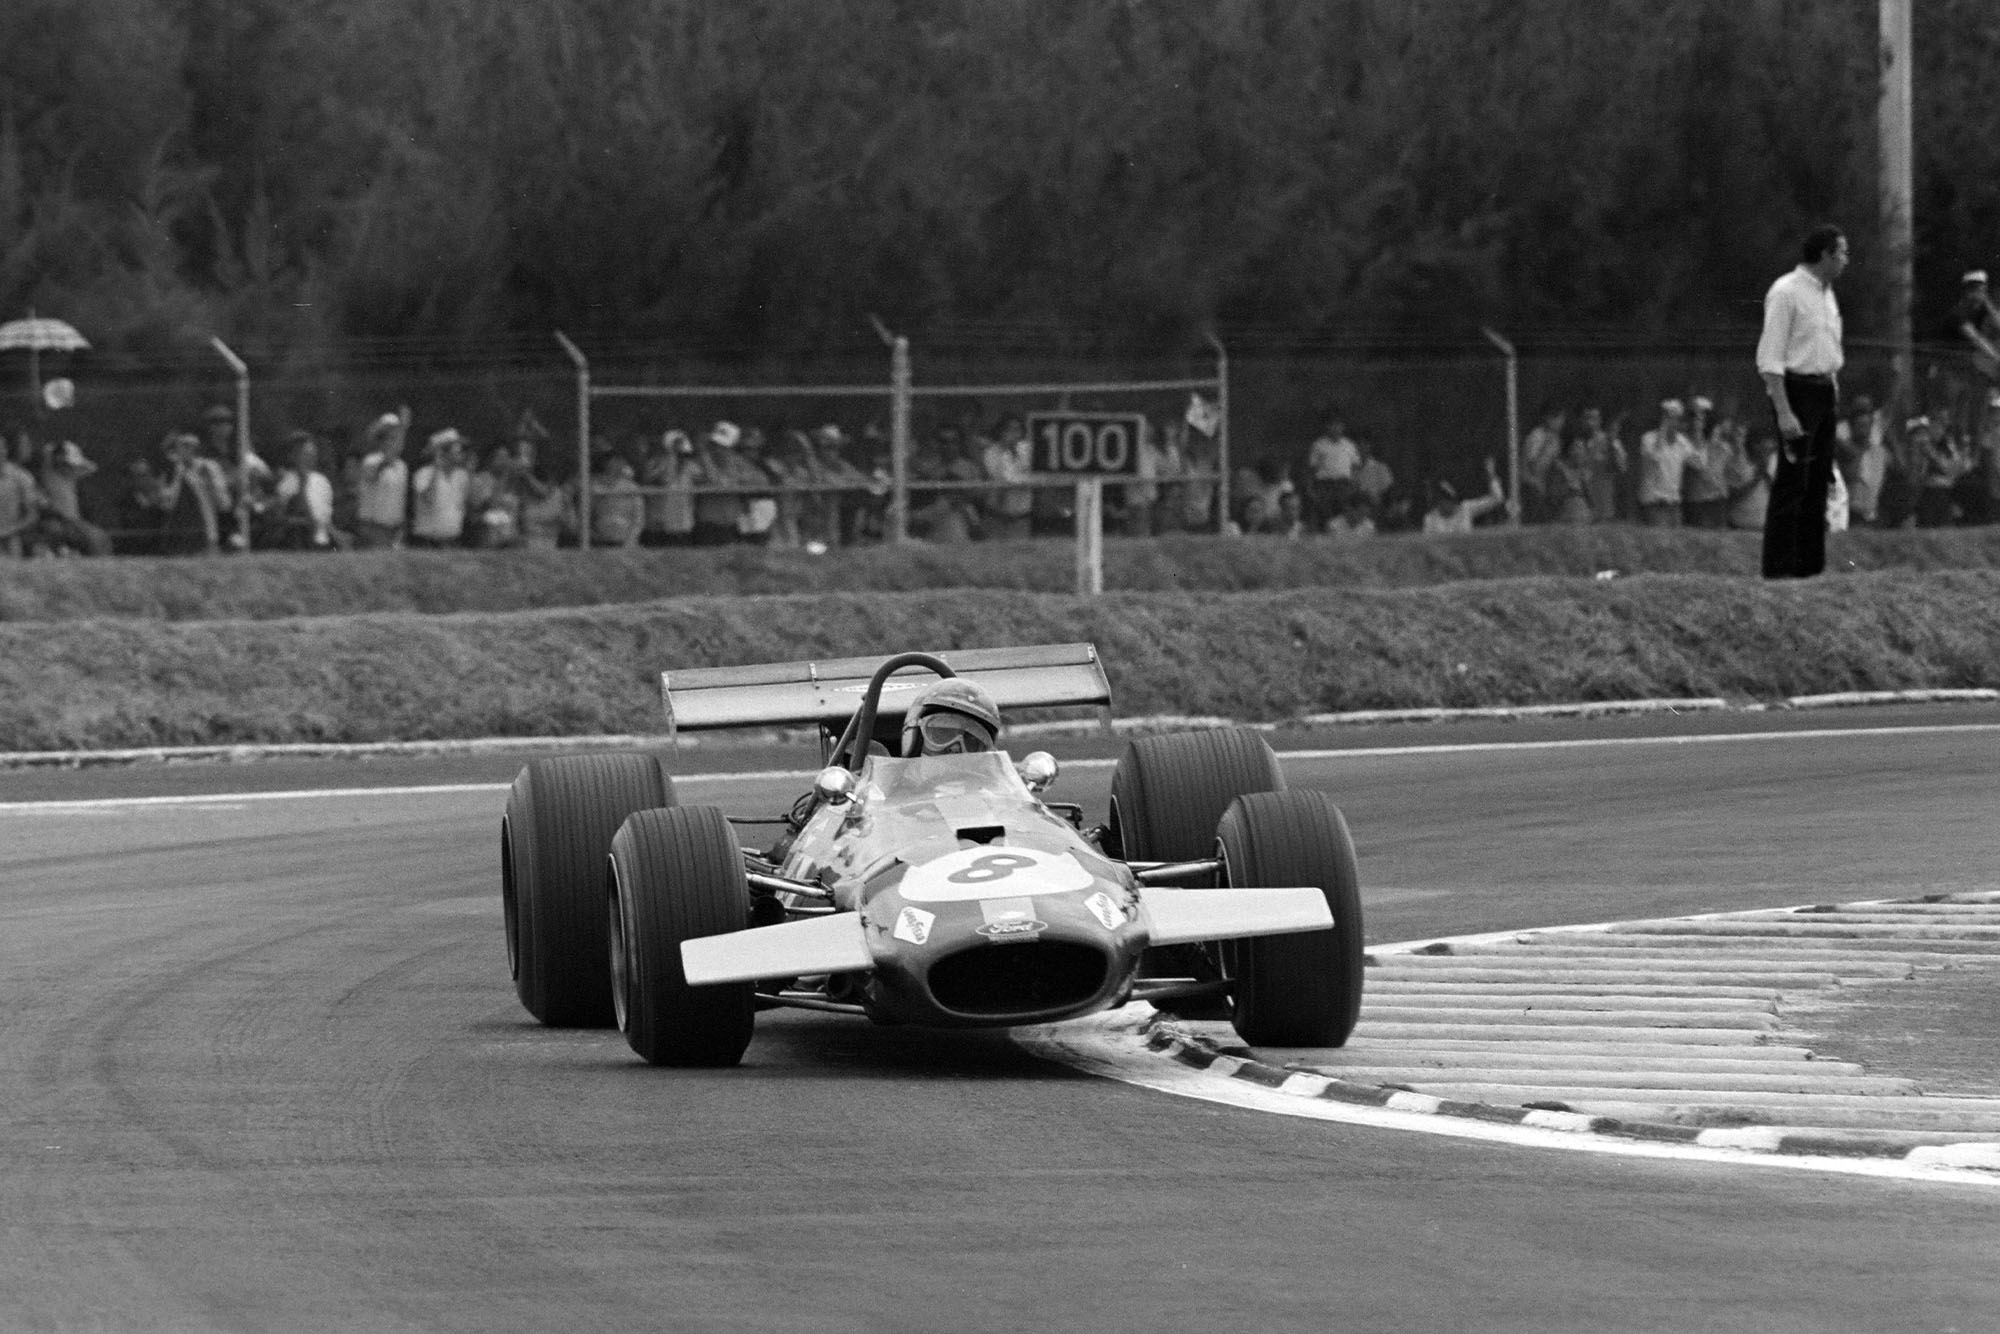 Jack Brabham driving a Brabham at the 1969 Mexican Grand Prix